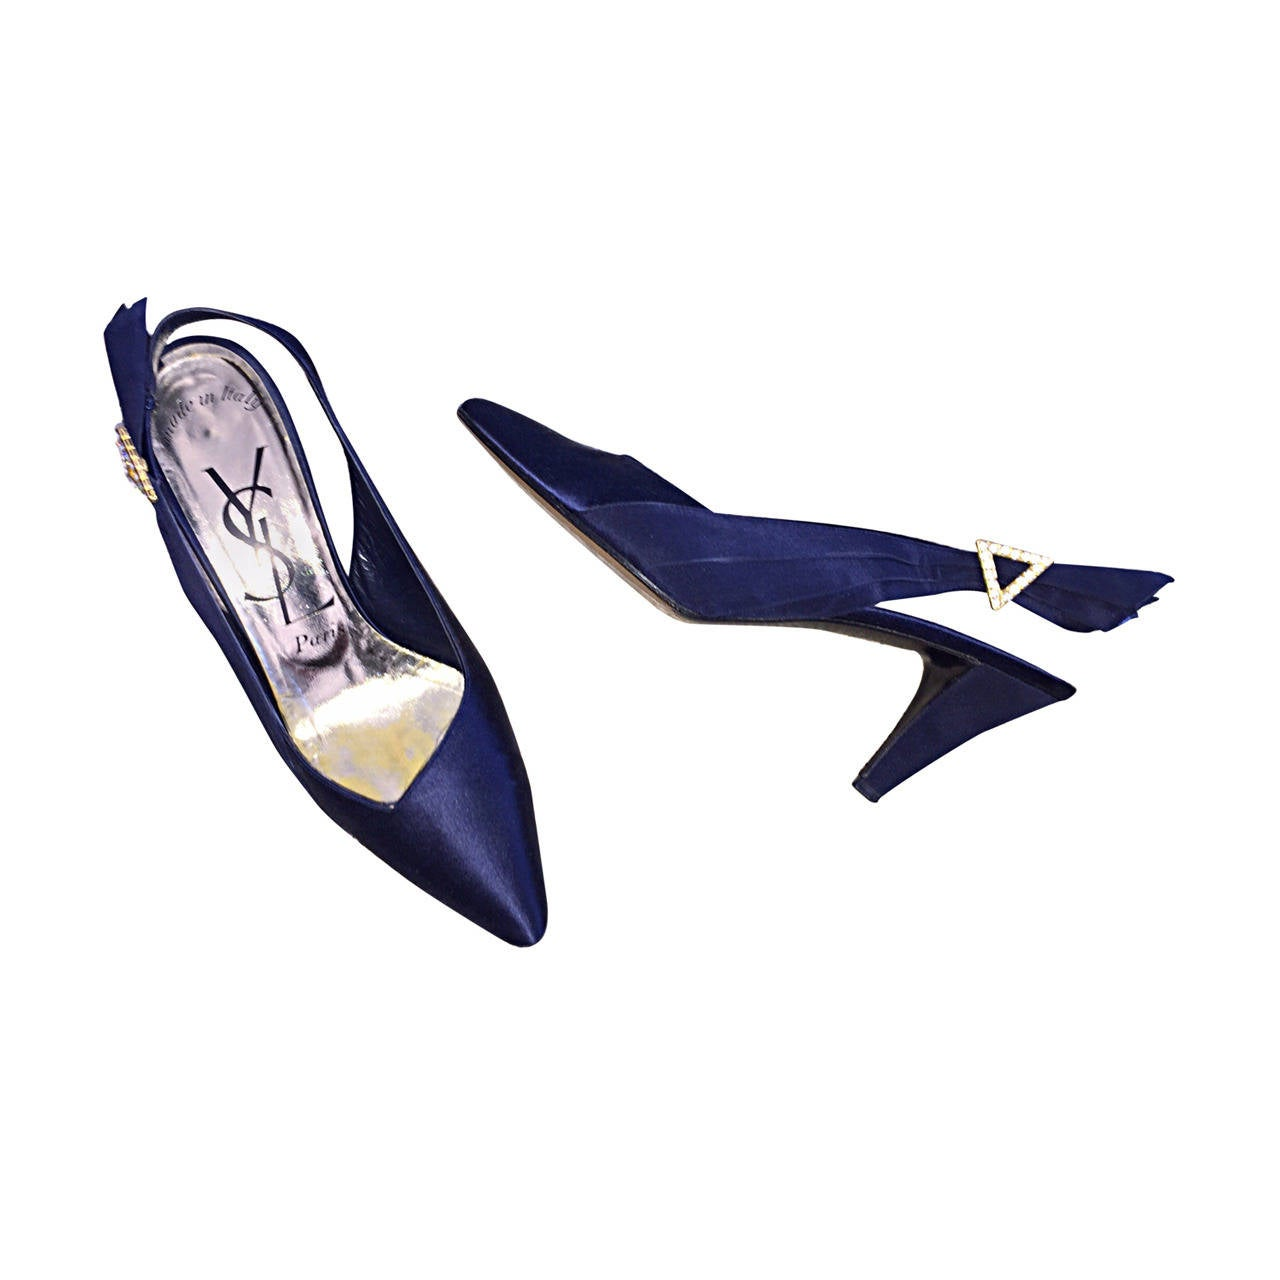 f6d7147df Yves Saint Laurent Navy Blue 8.5 Rhinestone Vintage Heels Shoes Avant Garde  For Sale. Beautiful vintage Yves Saint Laurent YSL ...